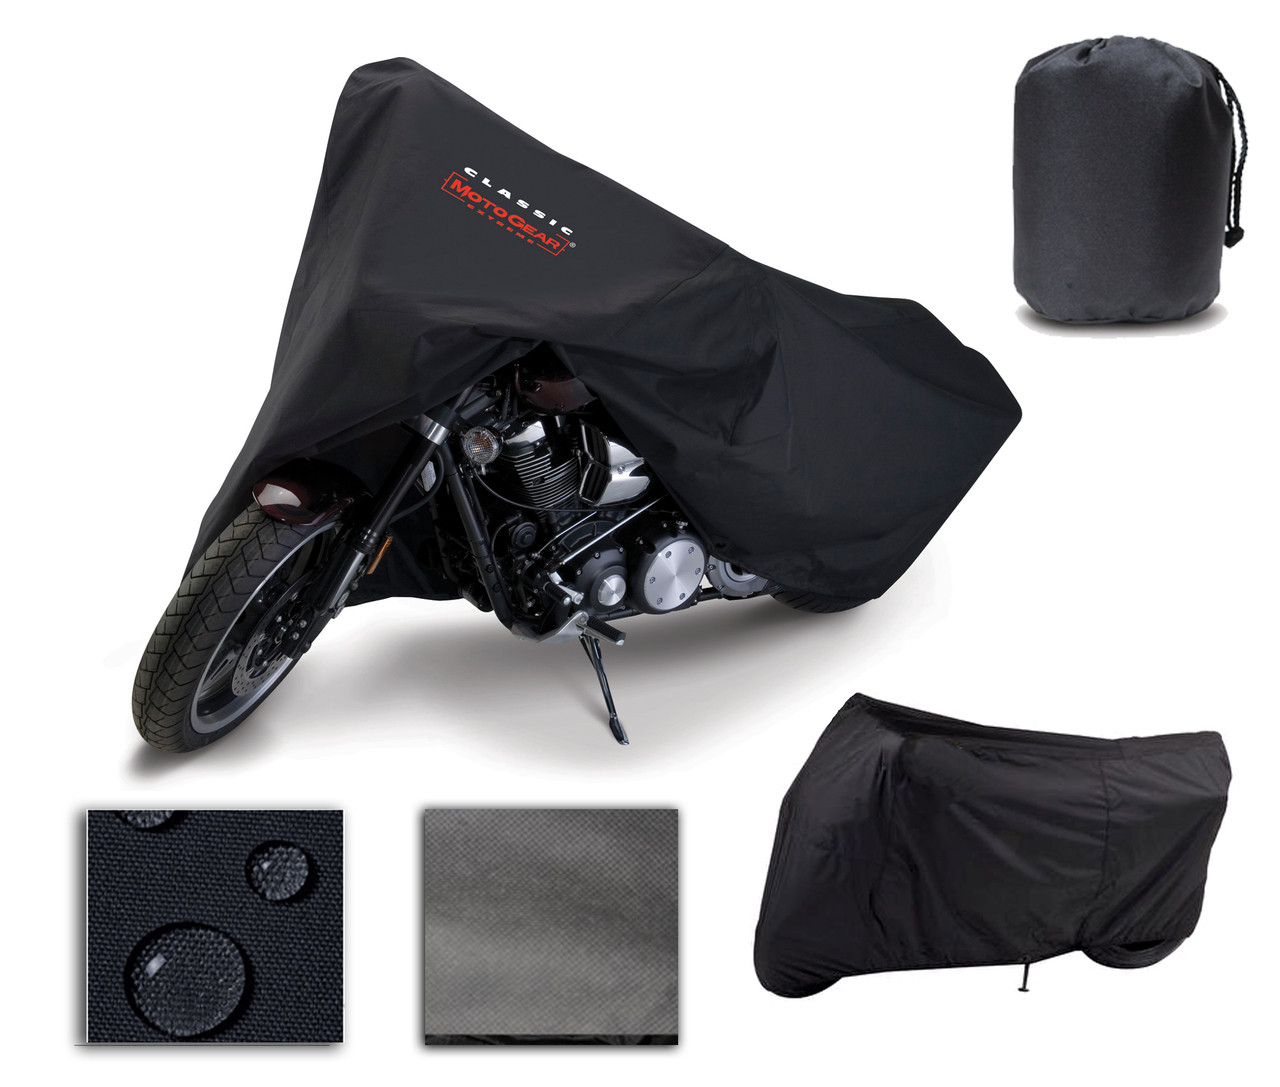 Harley Davidson Bike Covers >> Heavy Duty Motorcycle Covers Elitecarcovers Com